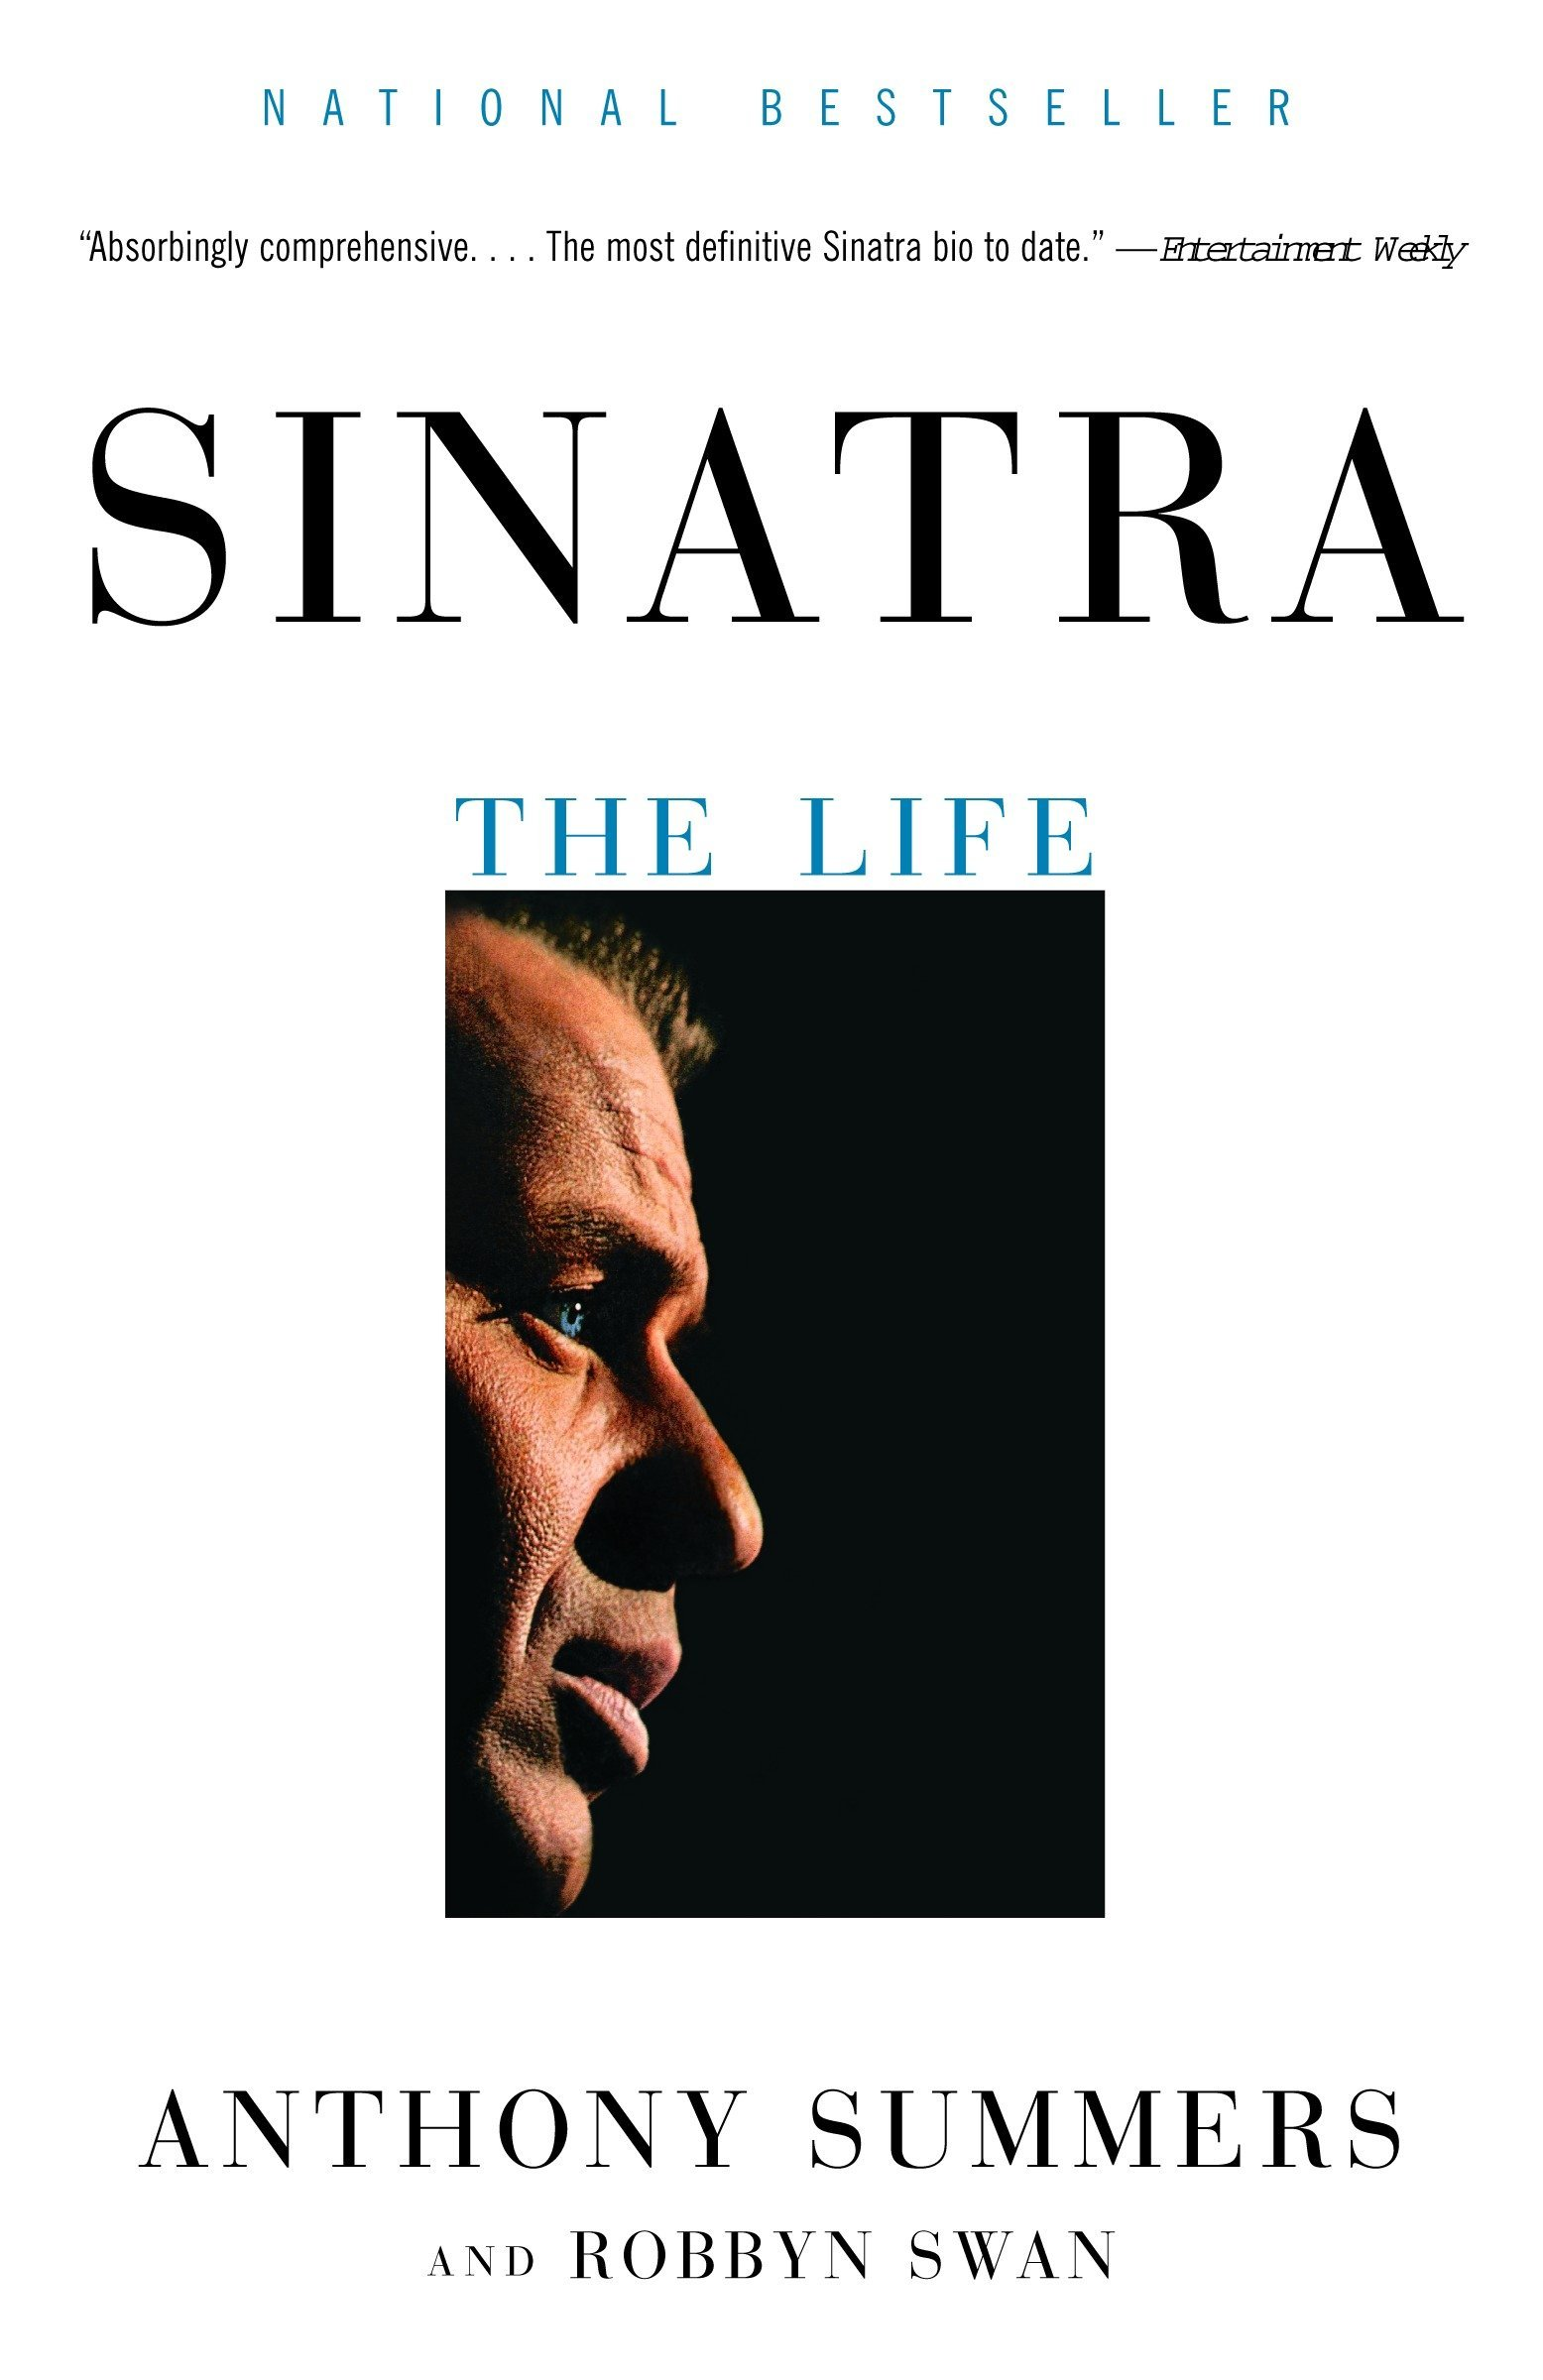 Sinatra: The Life: Anthony Summers, Robbyn Swan